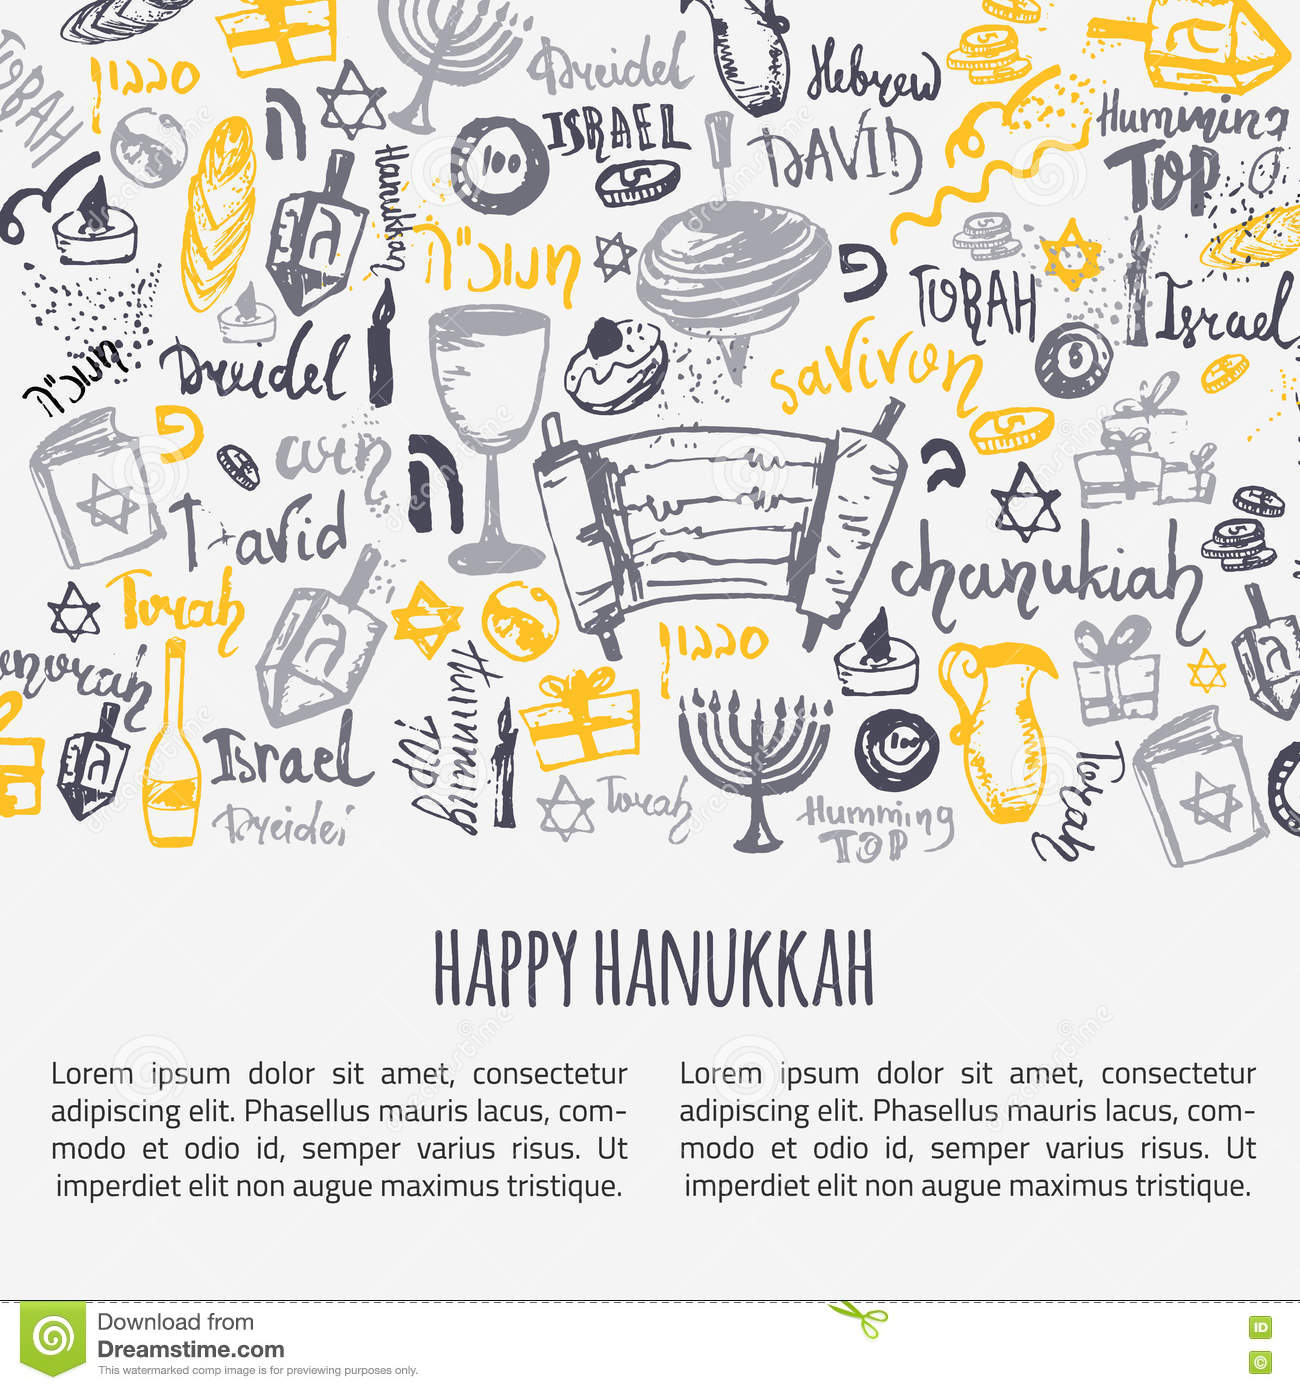 Happy hanukkah greeting card with hand drawn elements and lettering happy hanukkah greeting card with hand drawn elements and lettering menorah dreidel candle hebrew star for your design m4hsunfo